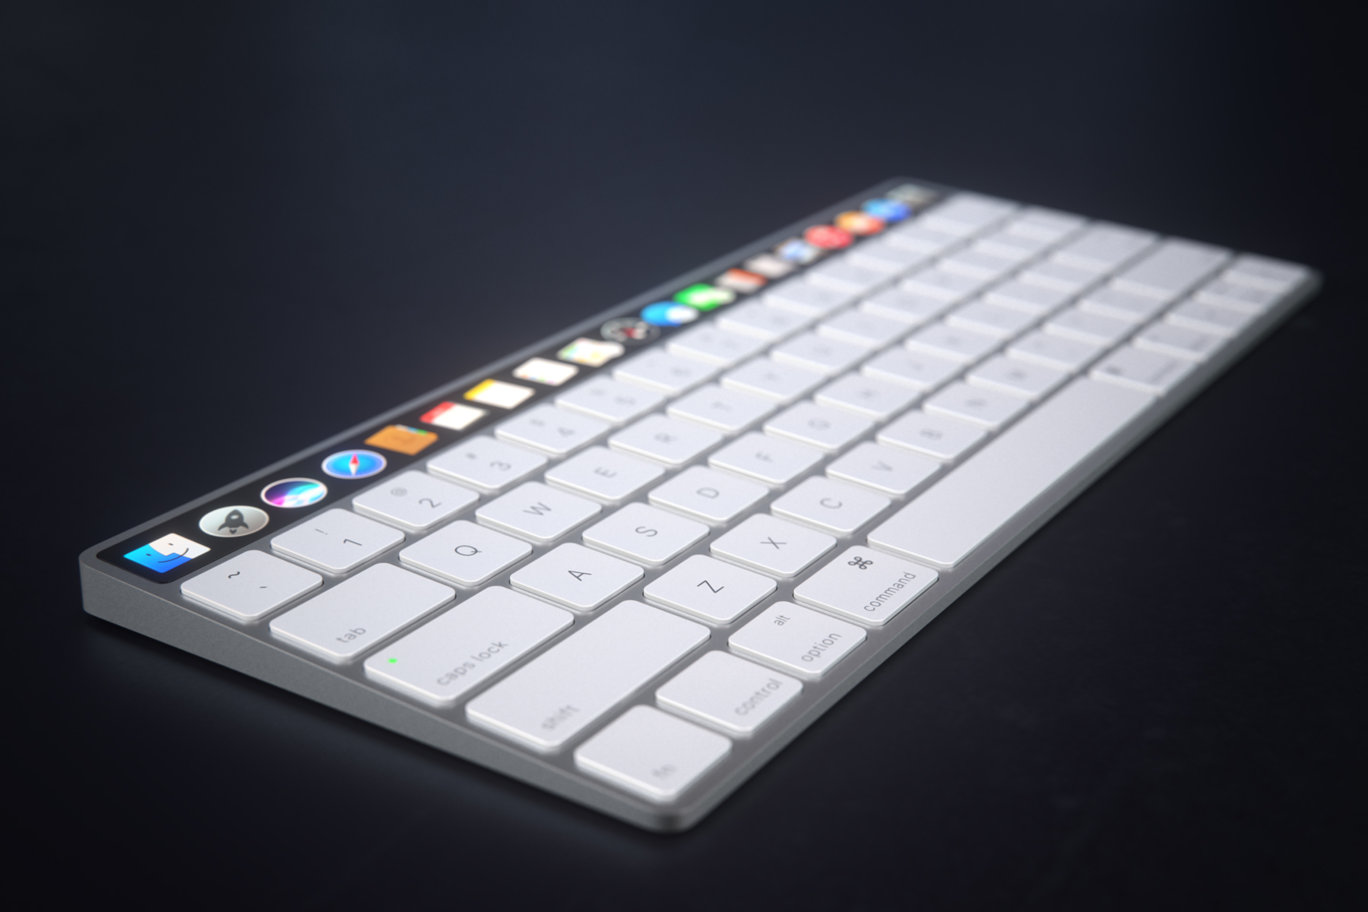 IMAC Keyboard with OLED Touch Bard 7